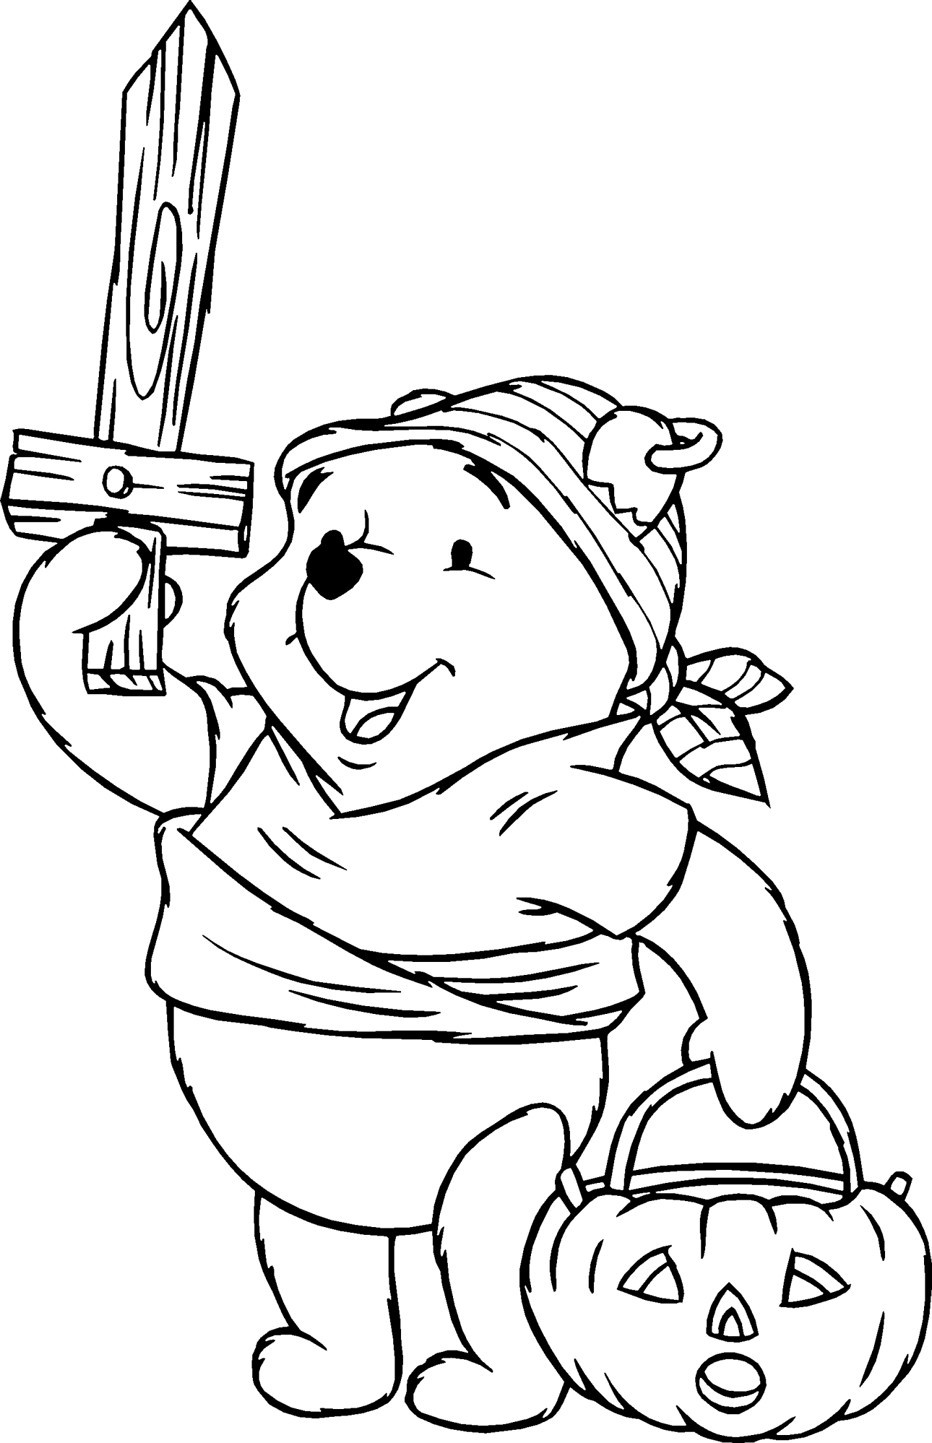 Halloween Coloring Sheets For Kids  24 Free Printable Halloween Coloring Pages for Kids